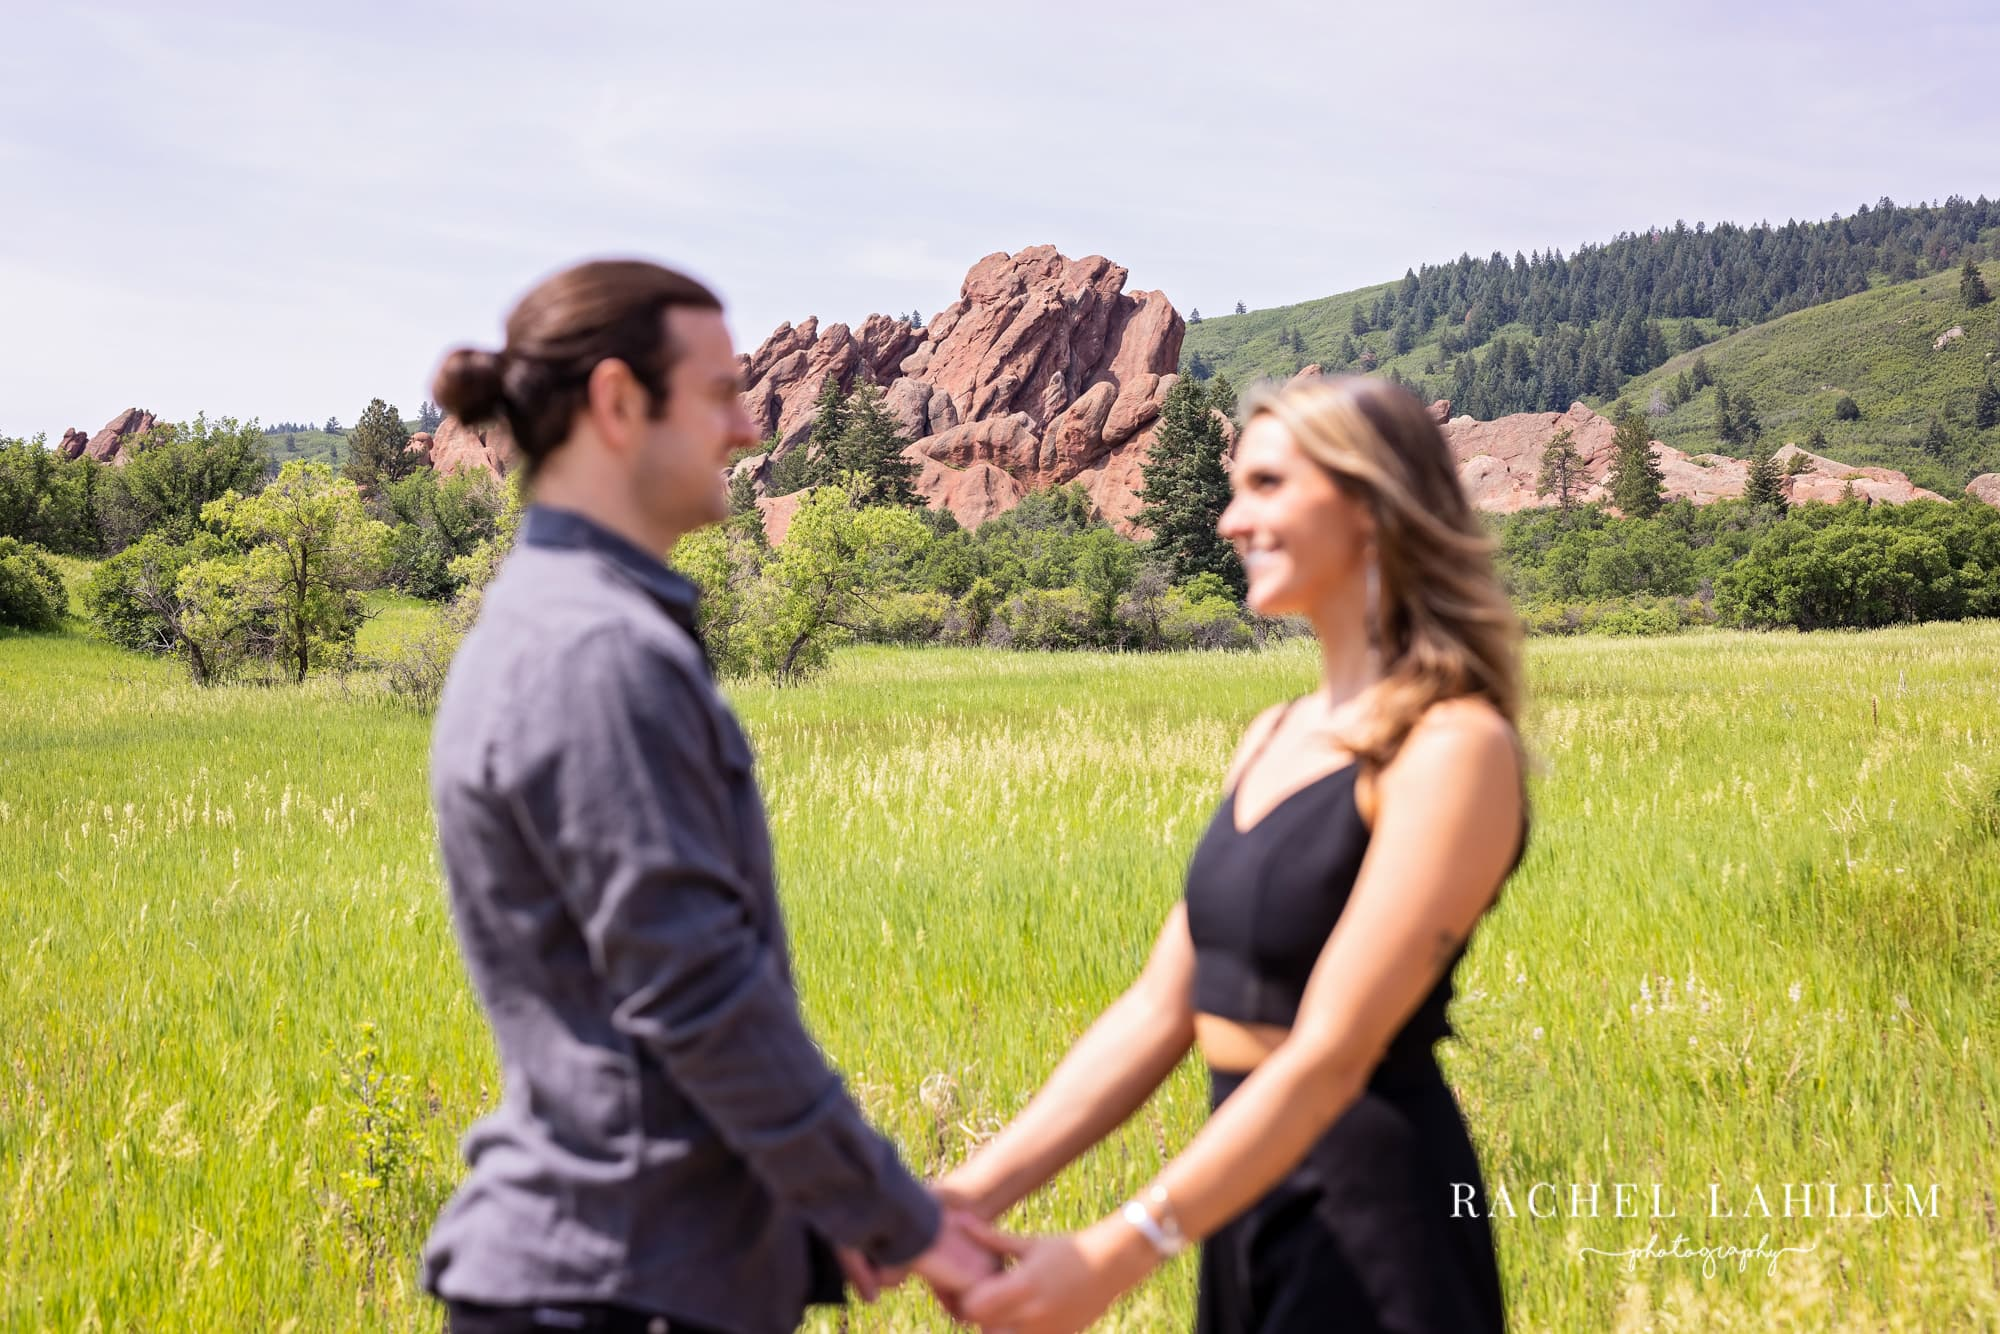 Couple hold hands and look at each other in front of rock formation at Roxborough State Park in Colorado.